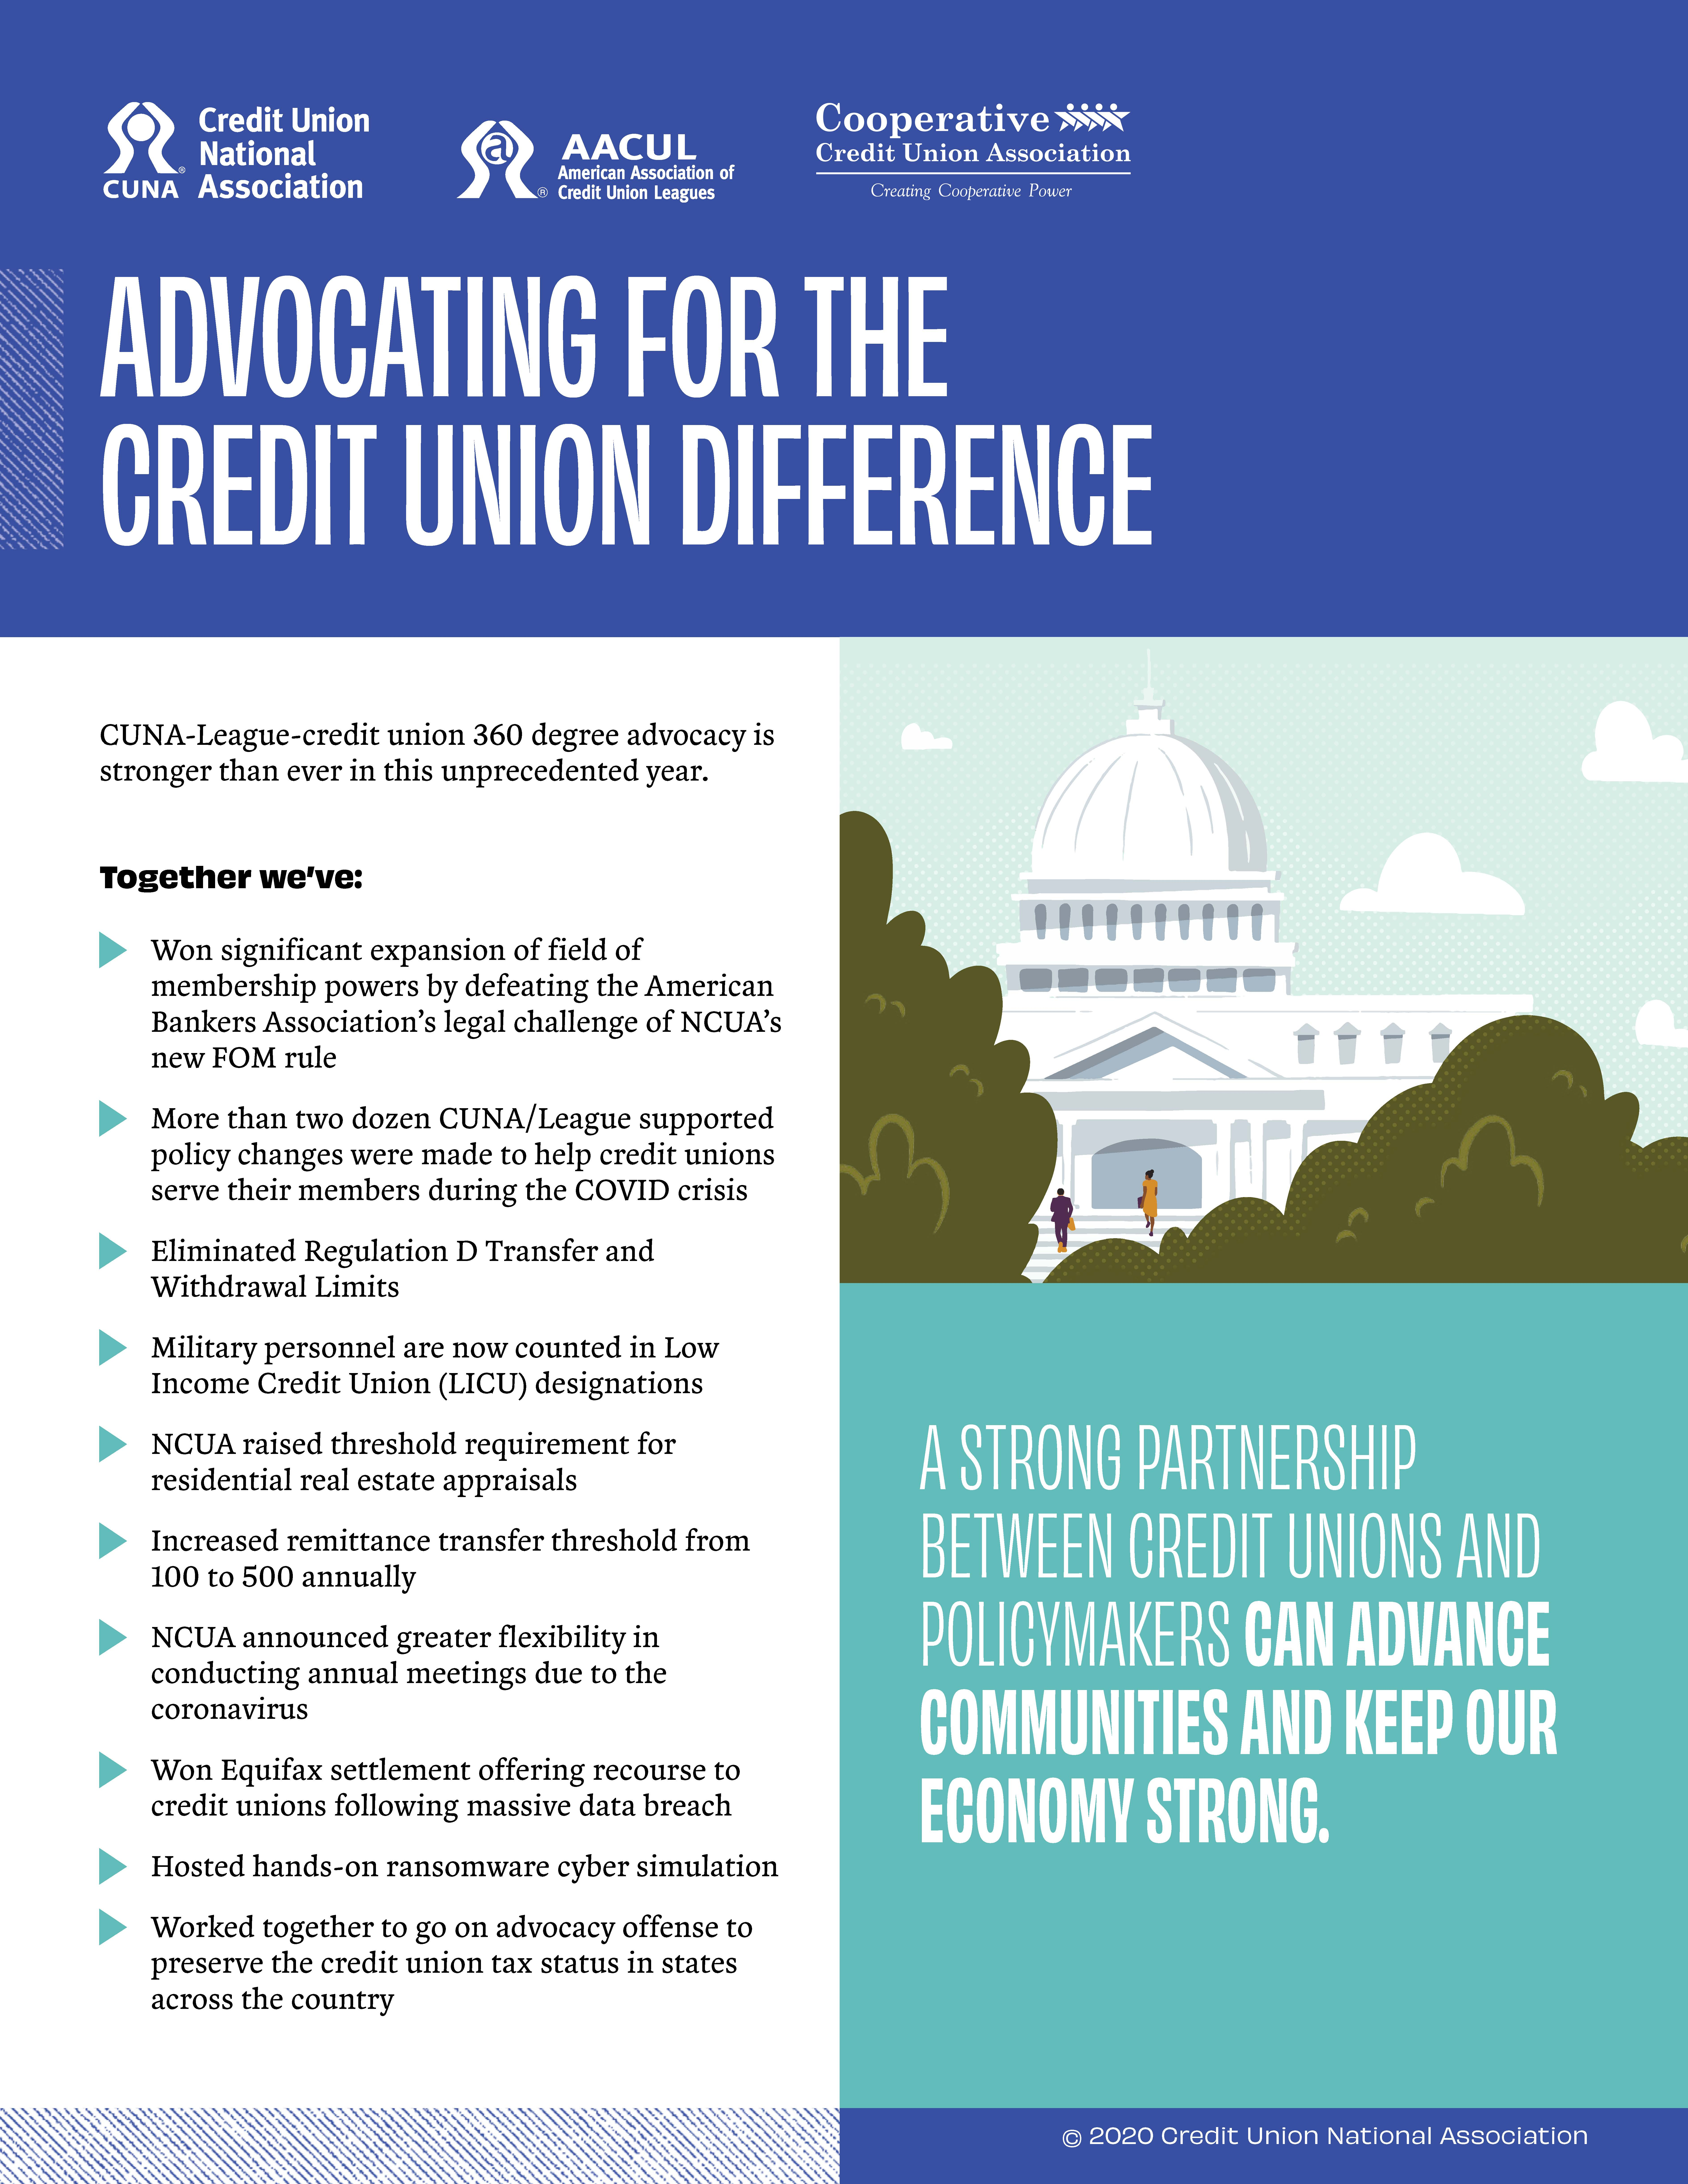 Advocating for Credit Union Difference